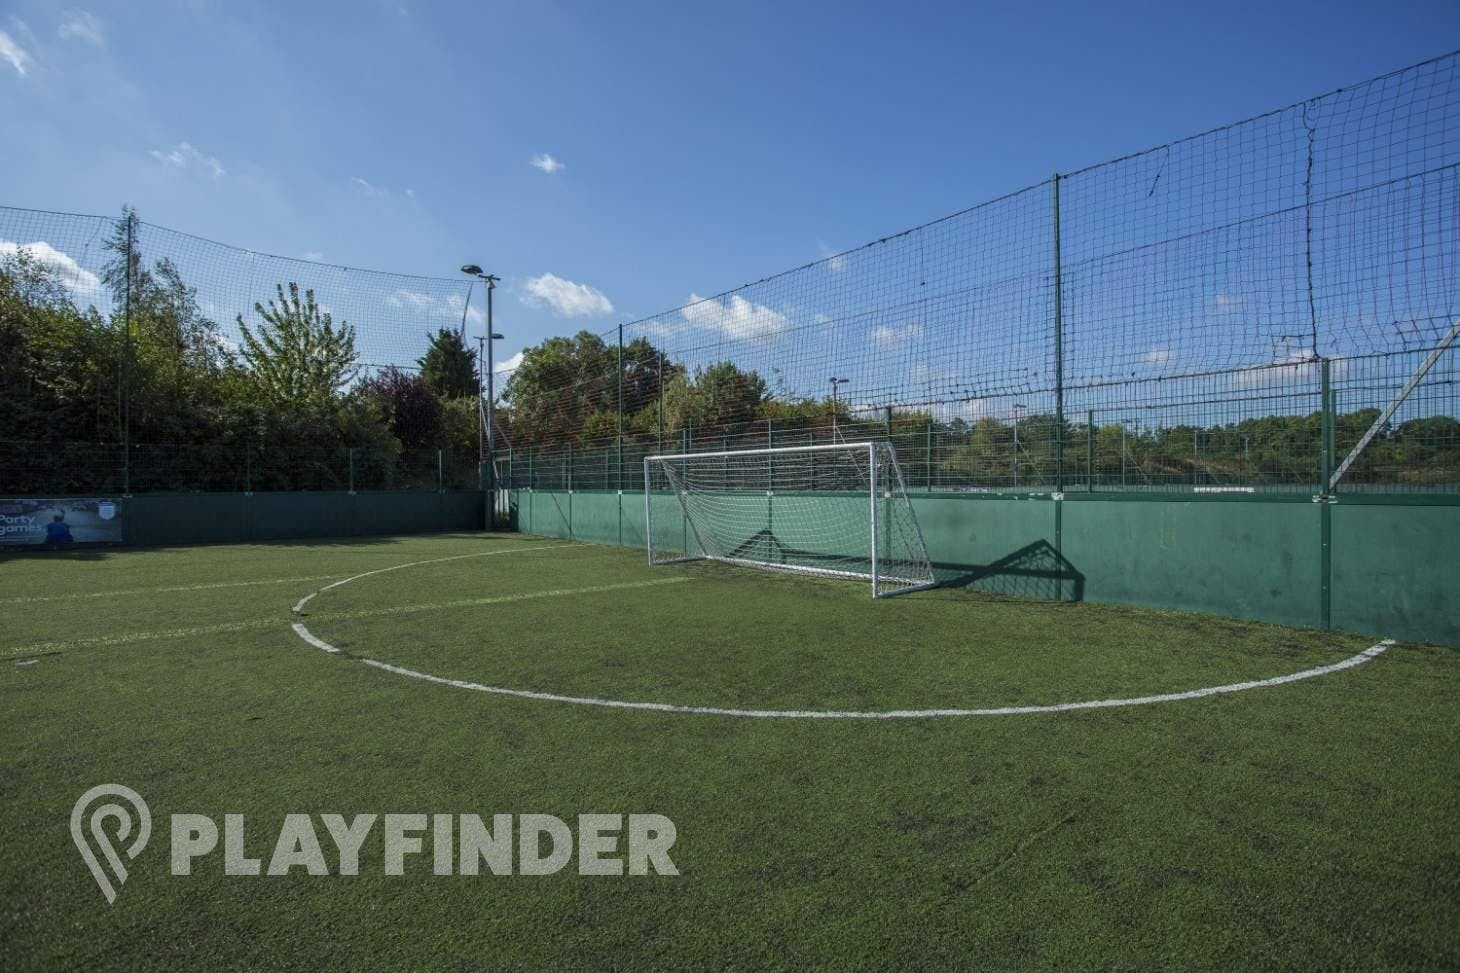 Powerleague Paisley 5 a side | 3G Astroturf football pitch